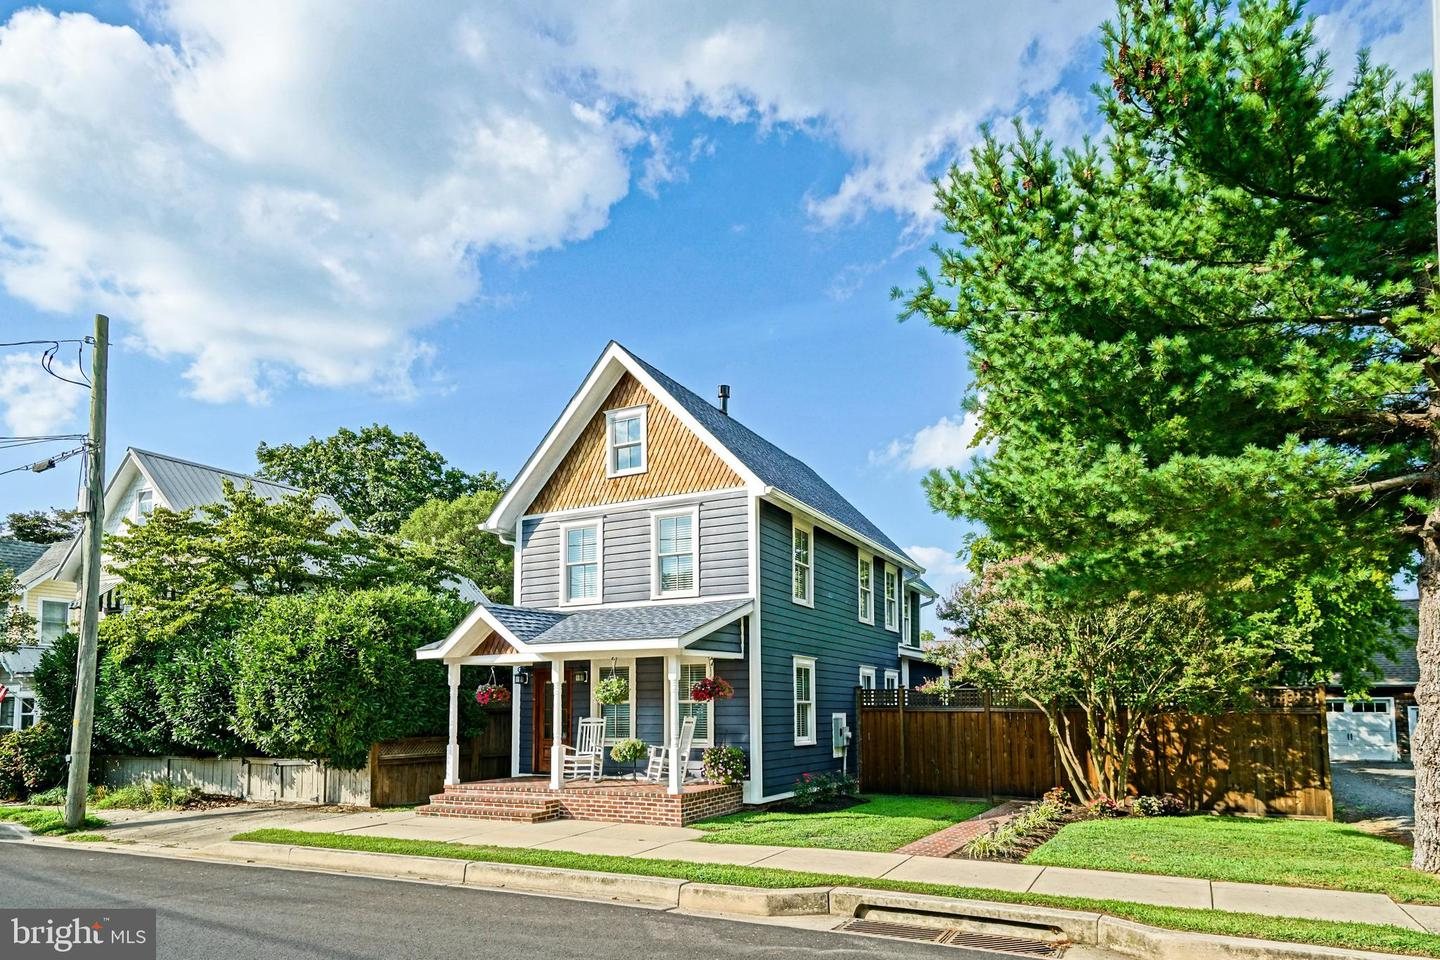 DESU145964-301957353697-2019-09-28-13-33-22 125 Dewey Ave | Lewes, DE Real Estate For Sale | MLS# Desu145964  - Lee Ann Group